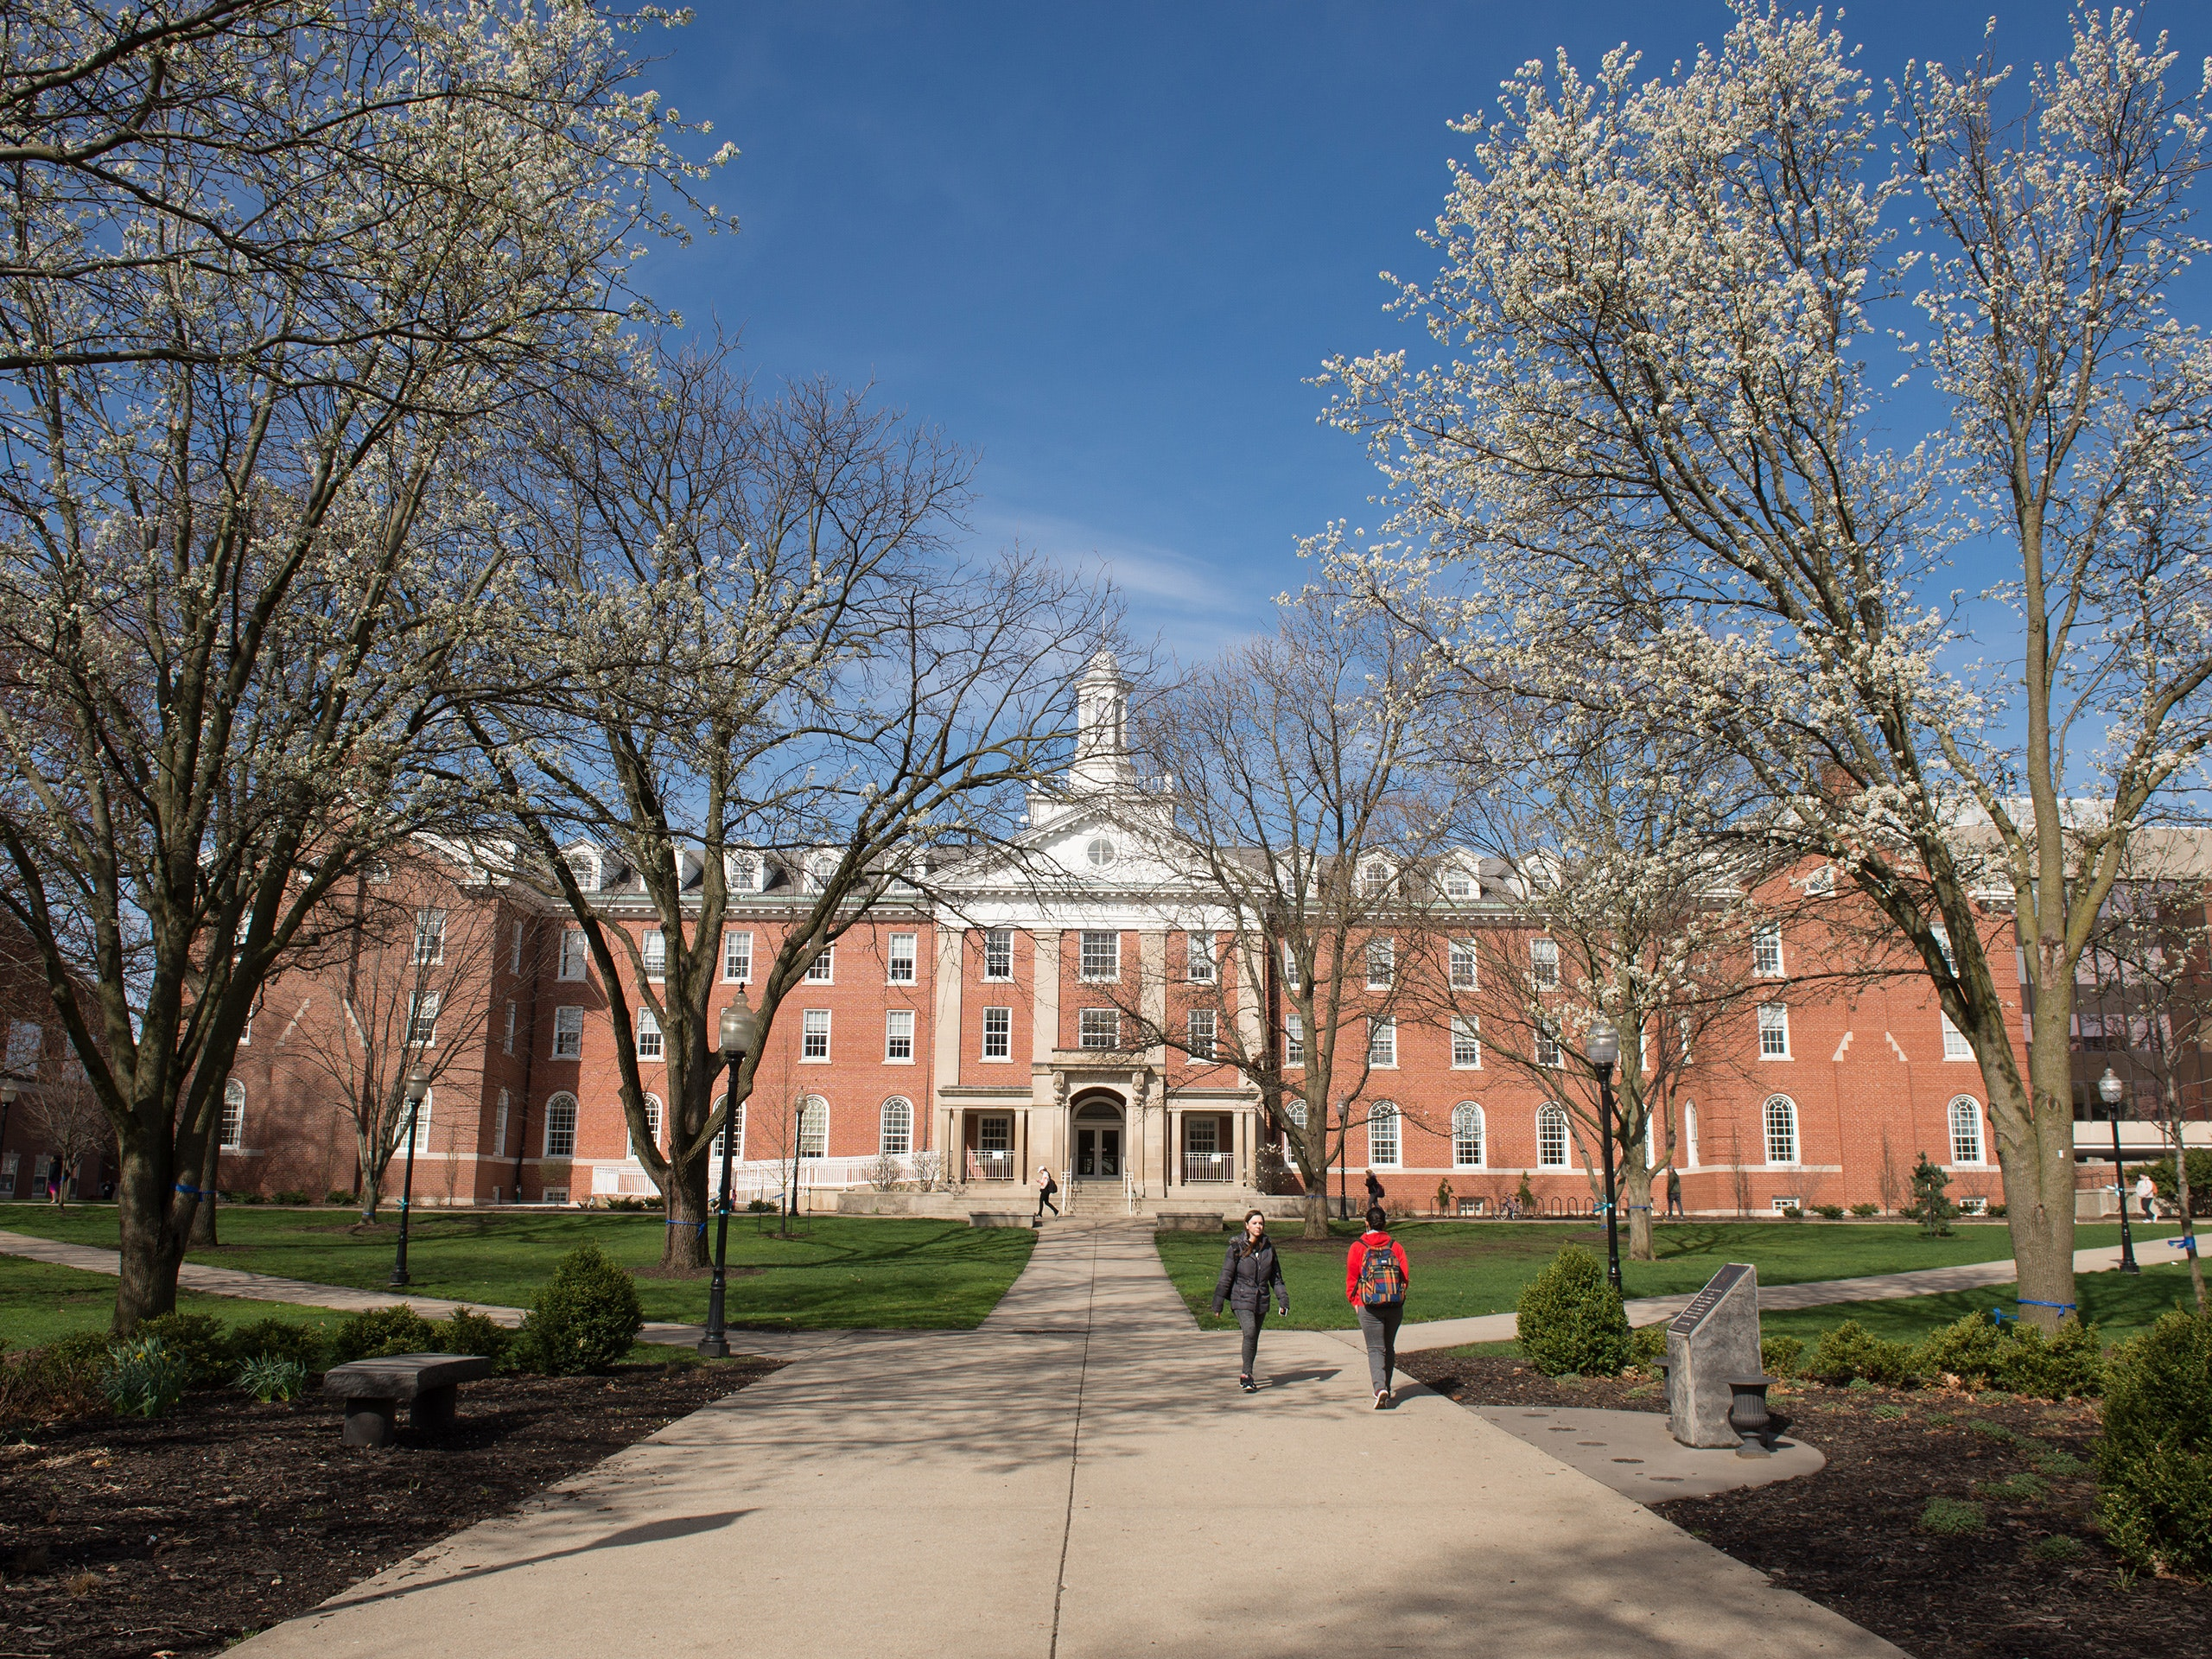 View of Fell Hall with students walking by and flowering trees.